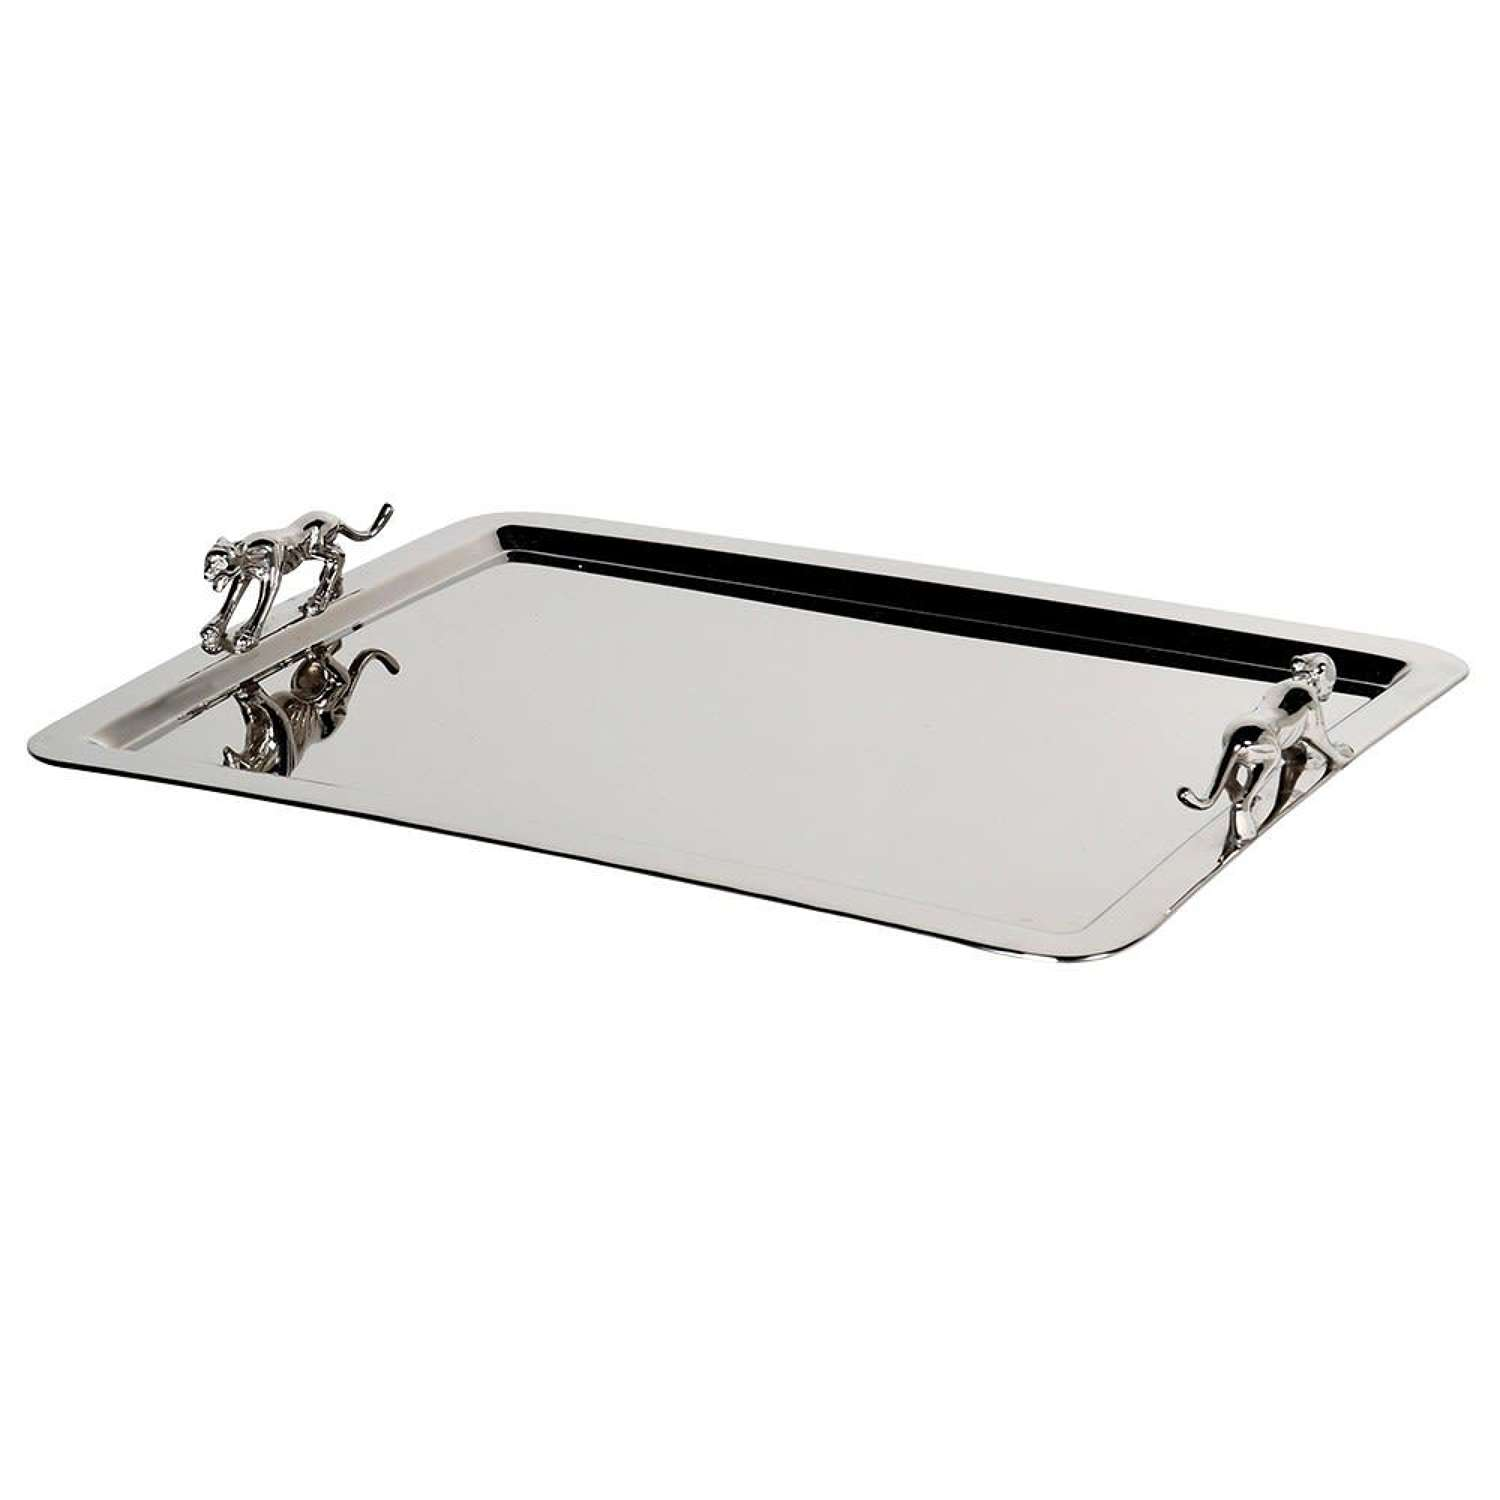 Nickel tray with panther handles